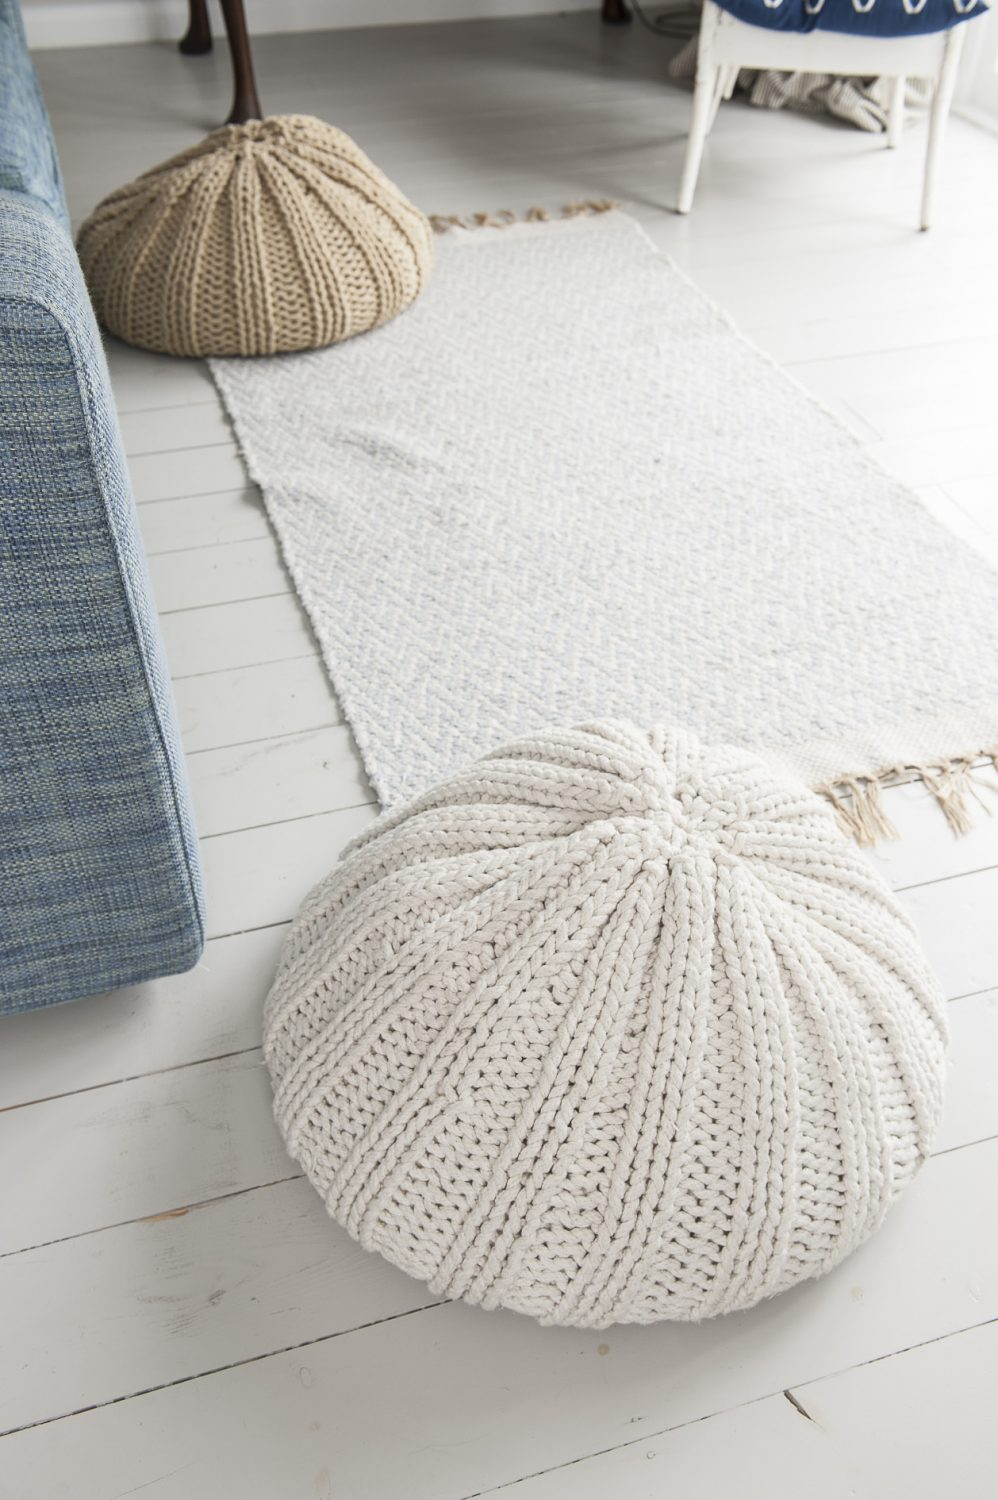 The knitted sea urchin poofs are from Dunelm